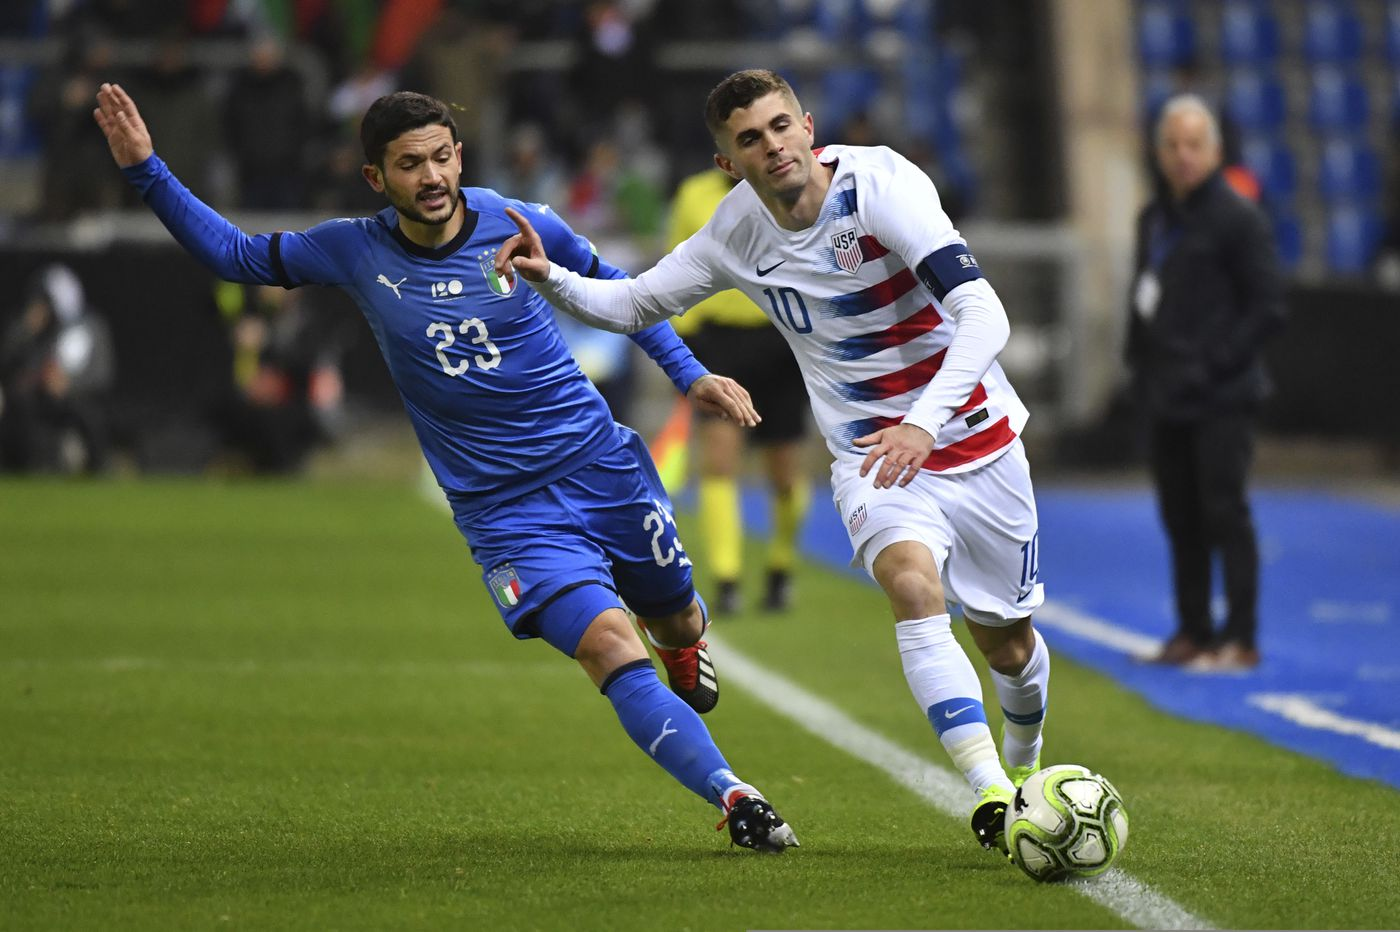 Christian Pulisic wants opponents to fear the USMNT, but knows it will take time